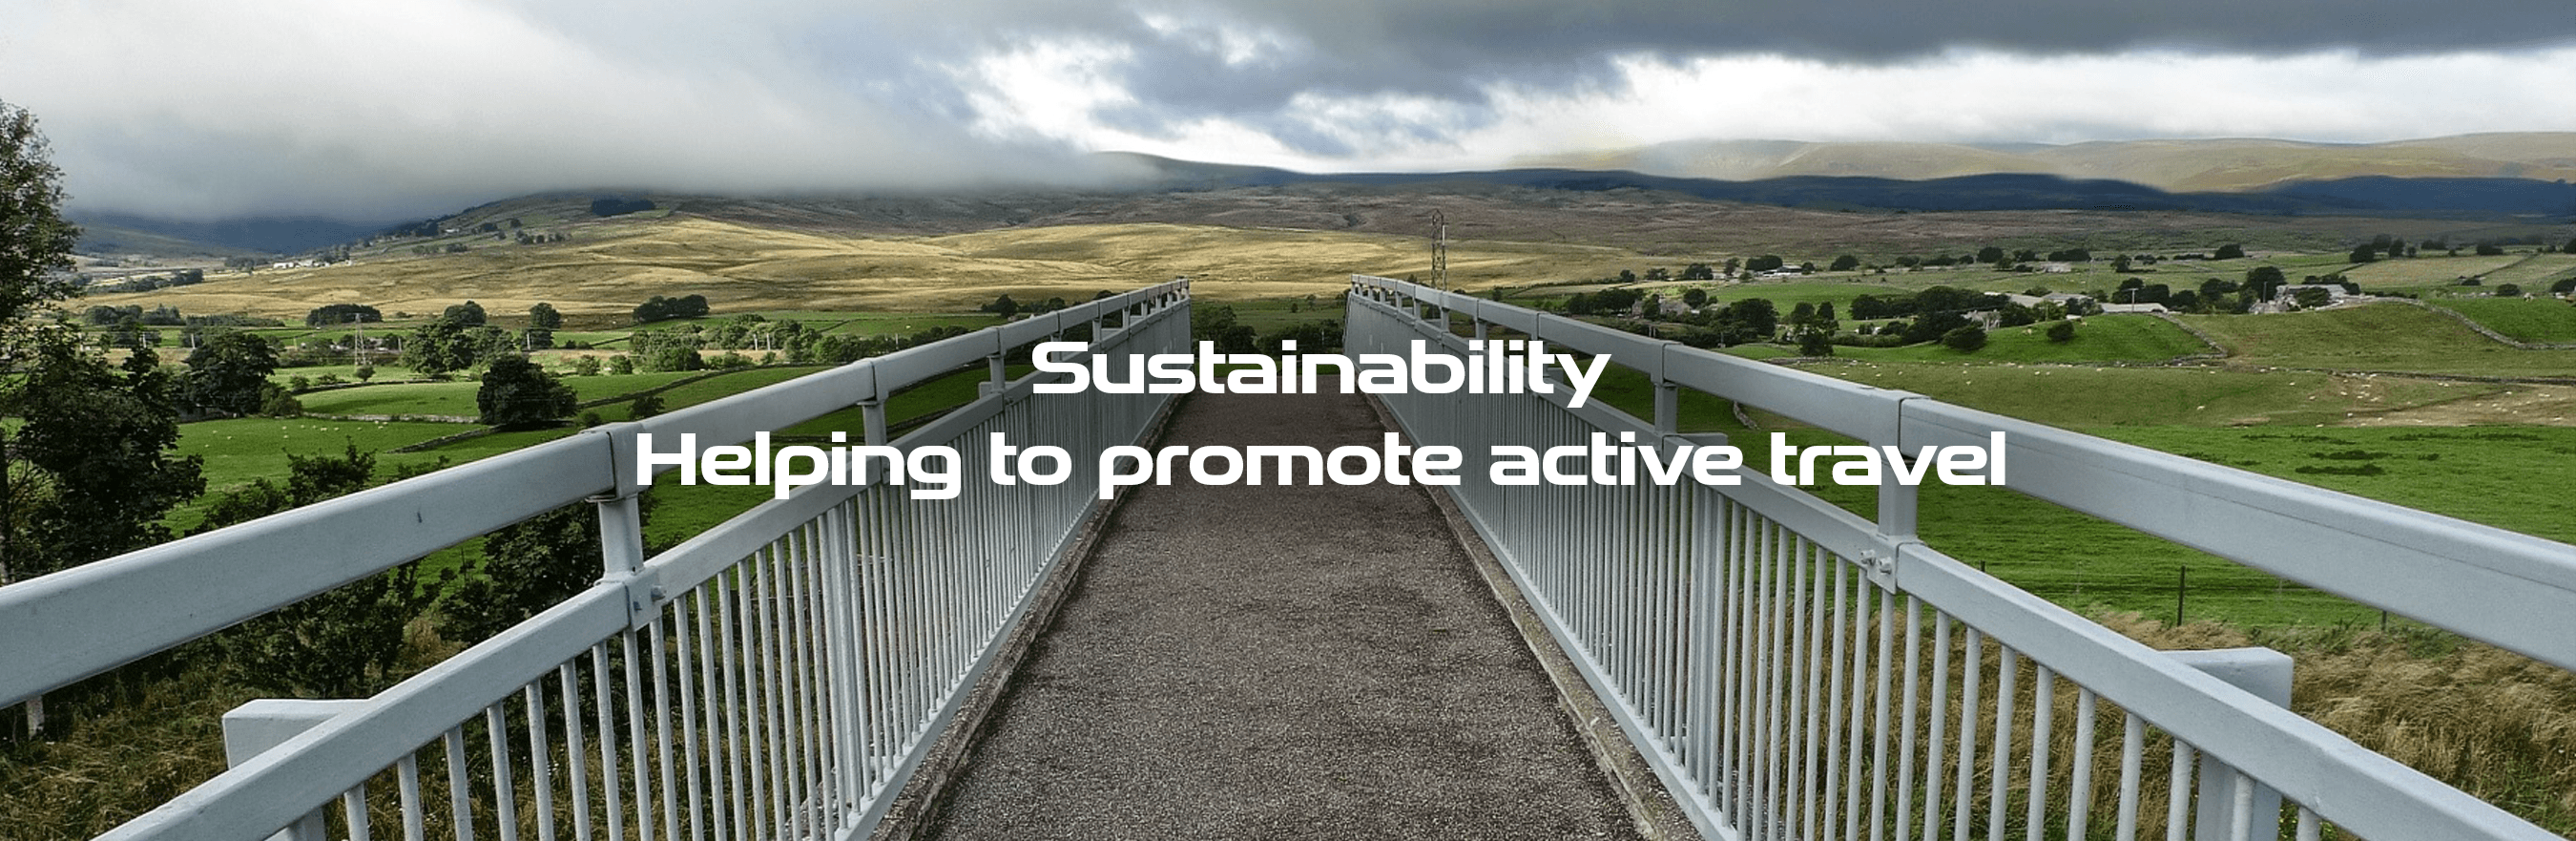 TRACC-sustainability-banner